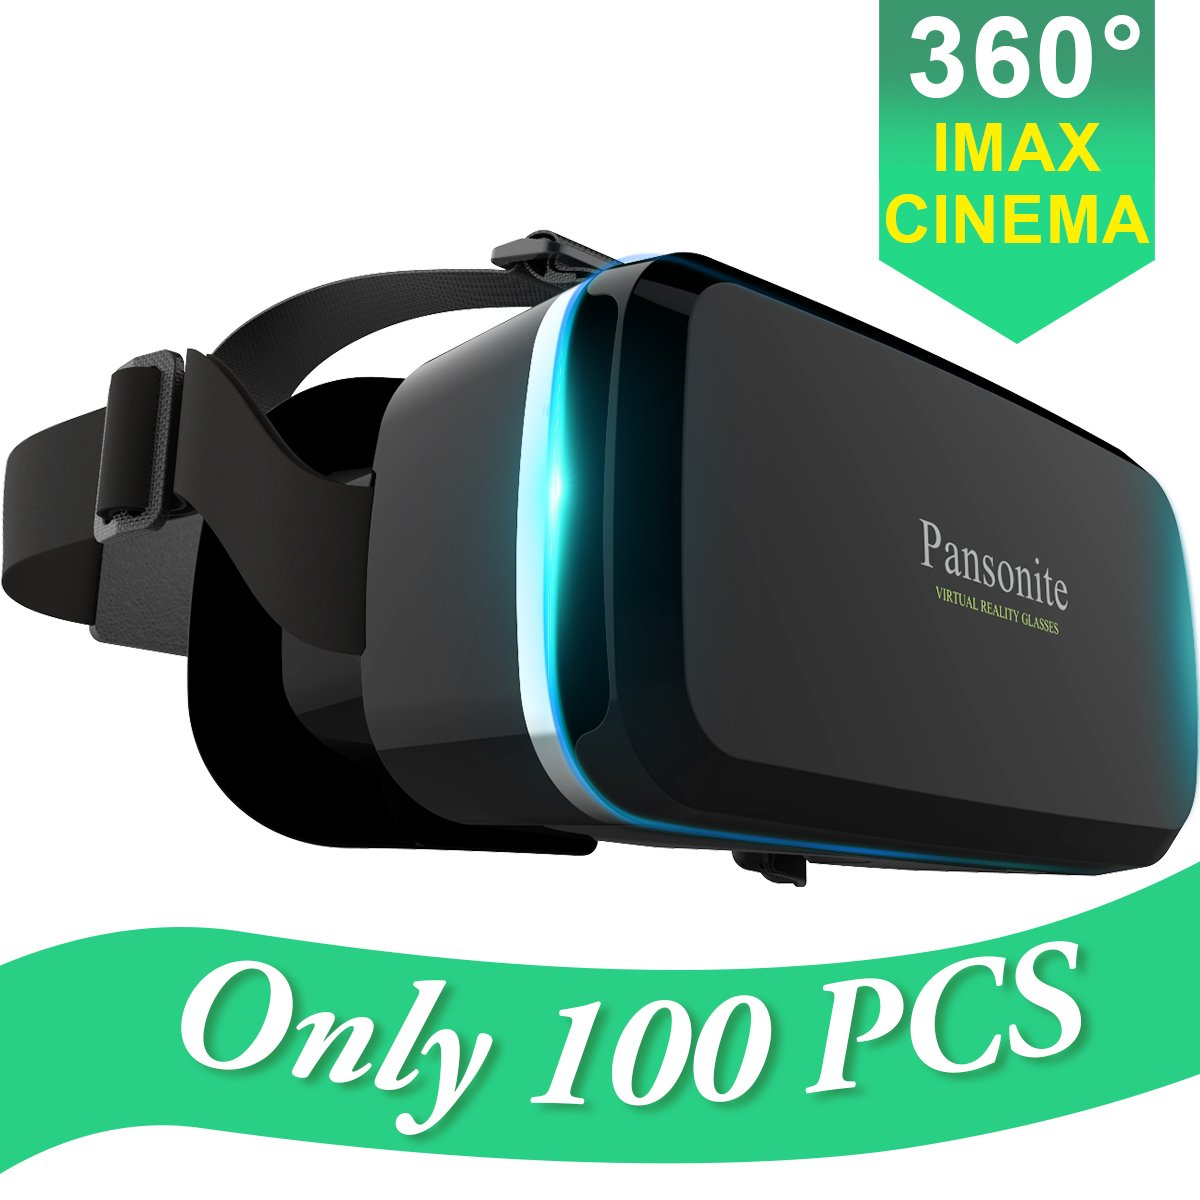 Pansonite Premium 3D VR Glasses with Adjustable Lenses & Head Strap, More Lightweight and Comfortable Virtual Reality headset for 3D Movies and Games, Fit for iPhone and Android Smartphone (black) by Pansonite